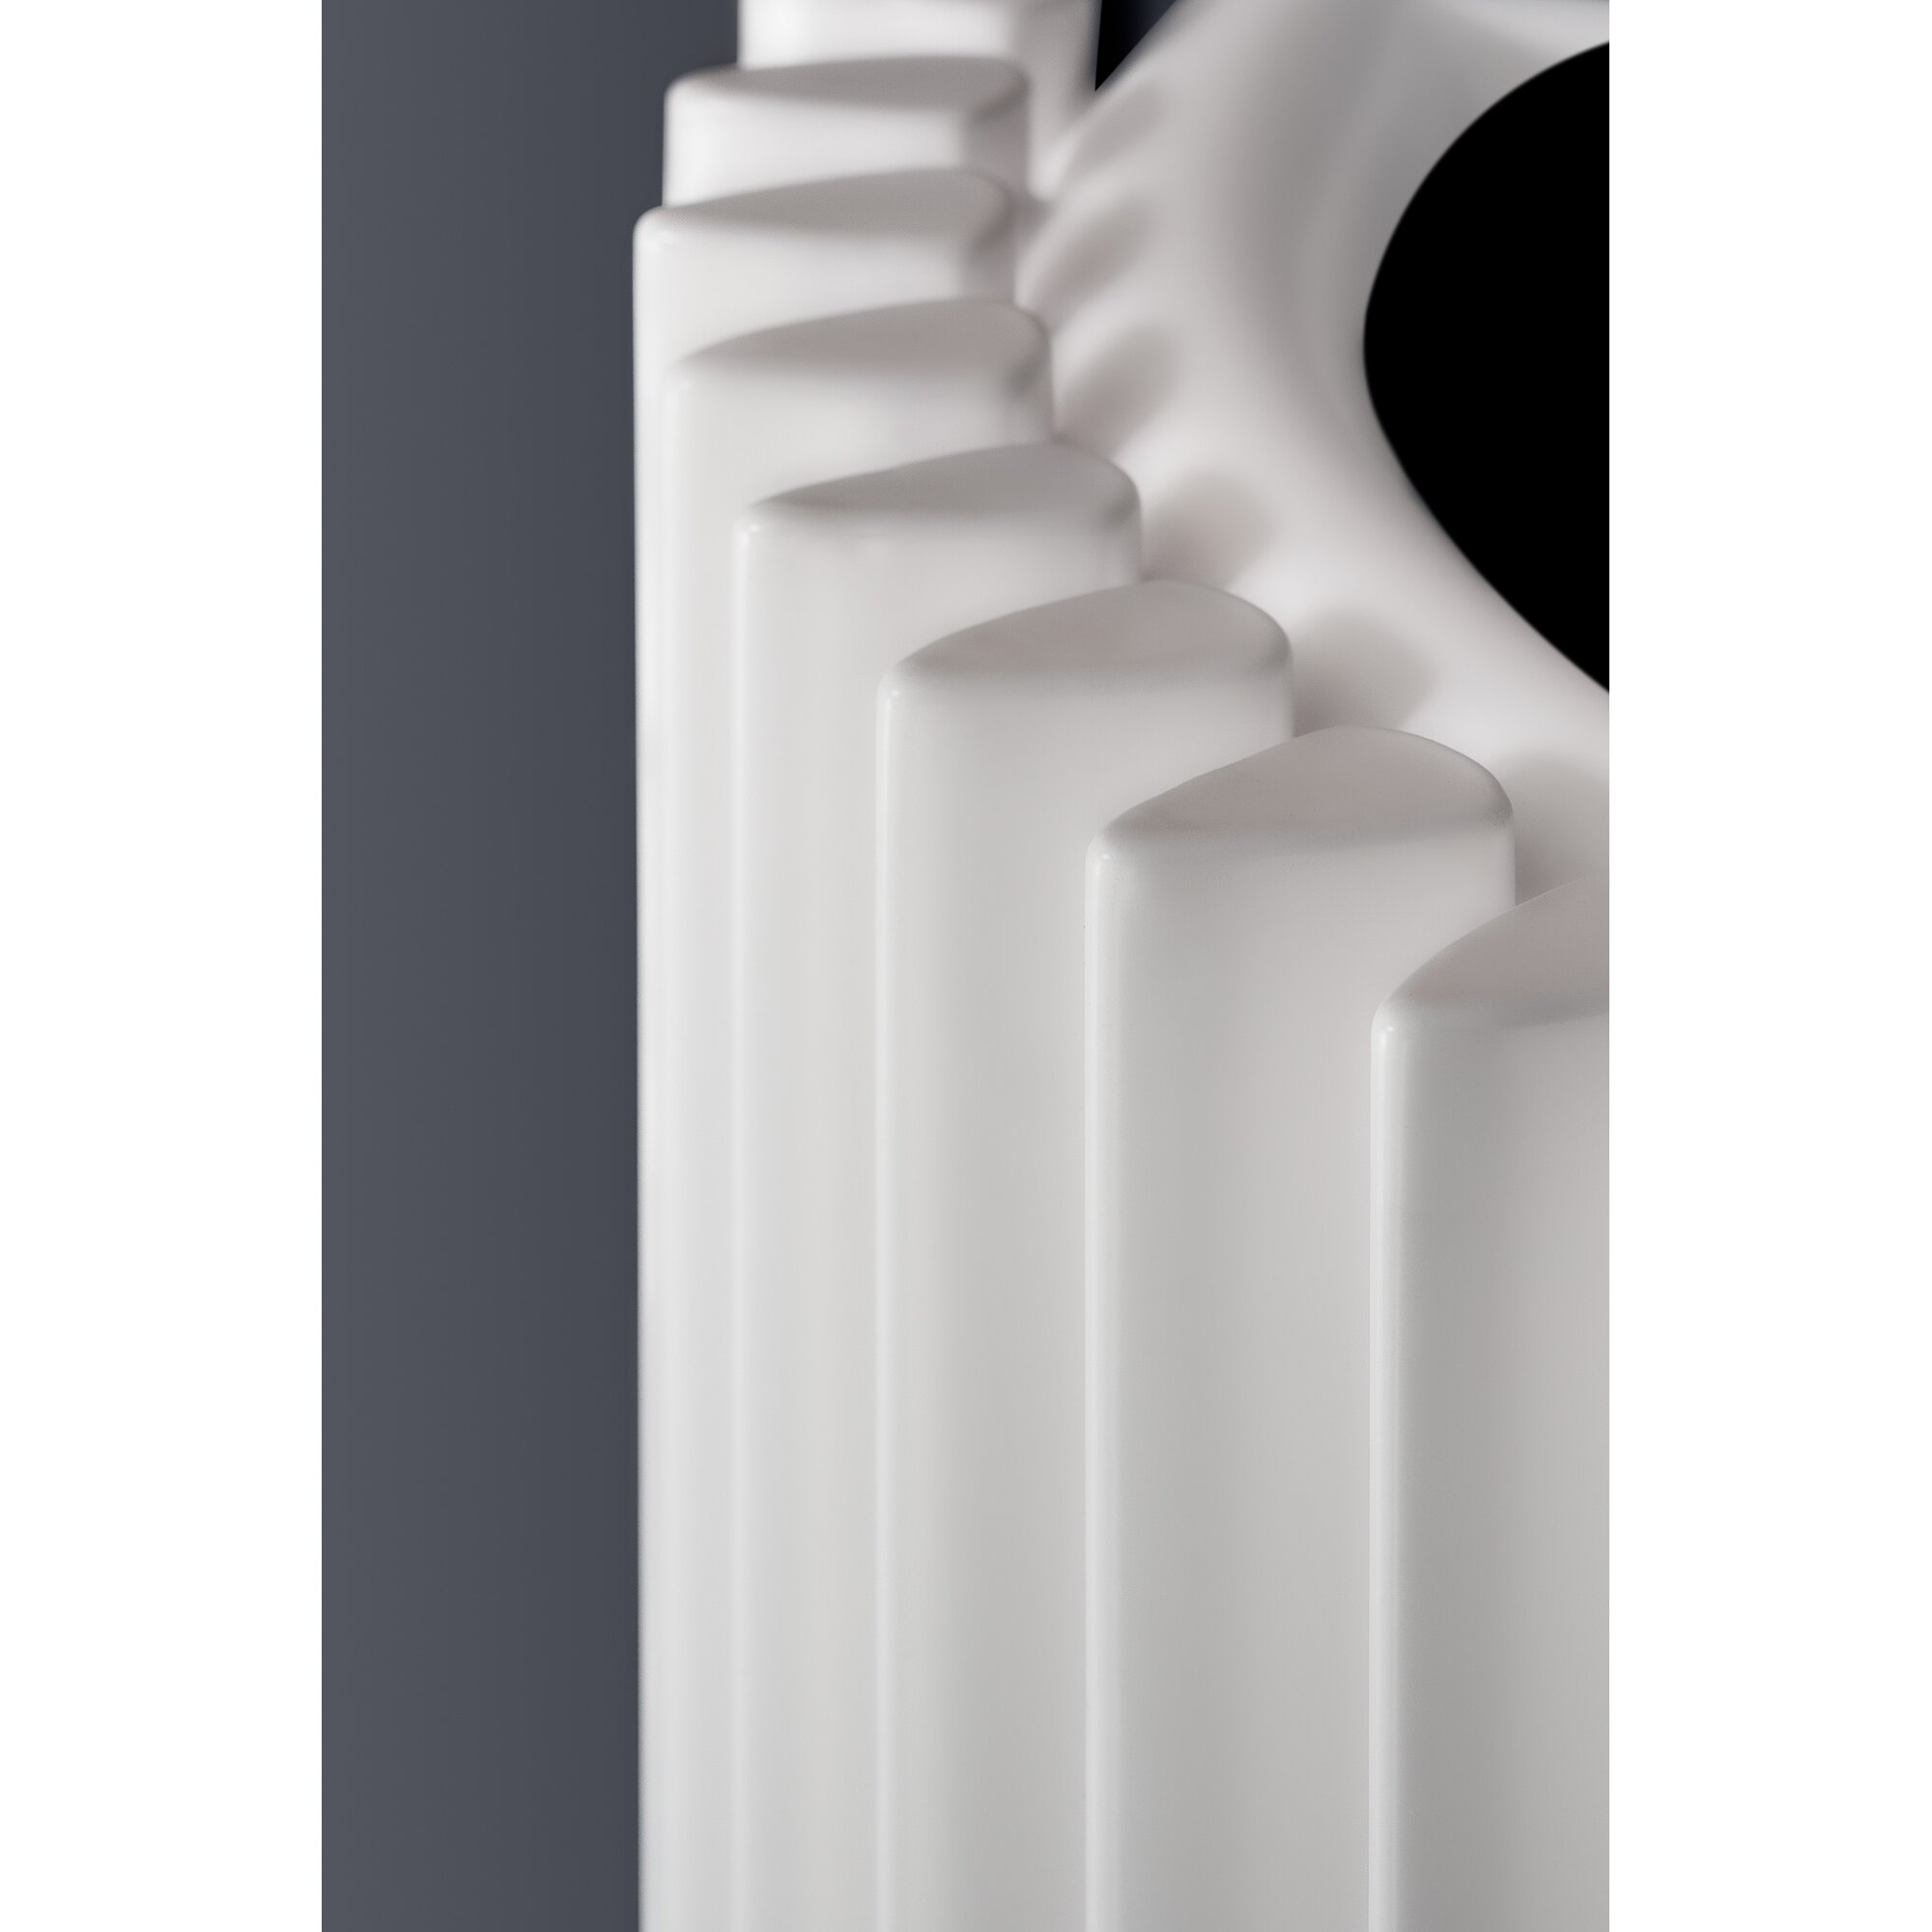 Eucotherm Corus Vertical Designer Radiator Wayfaircouk : CorusVerticalDesignerRadiator from www.wayfair.co.uk size 2000 x 2000 jpeg 100kB